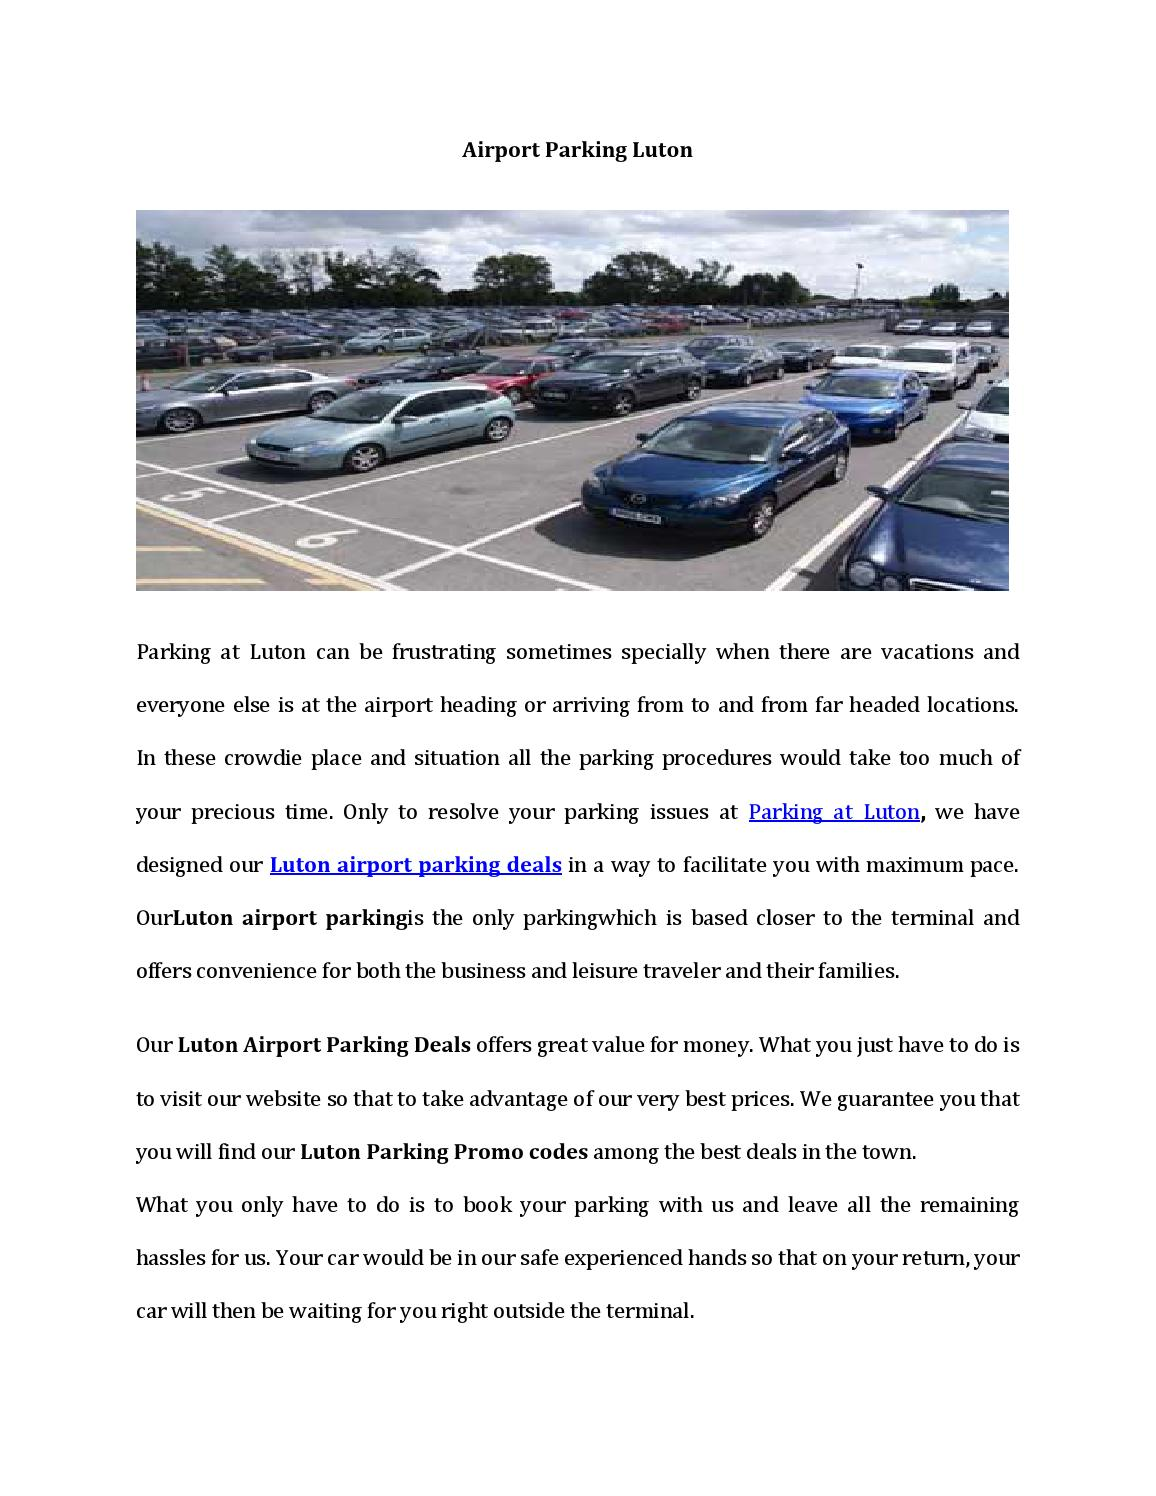 Airport Parking Luton With Compare Parking Deals By Rubyclark613 Issuu